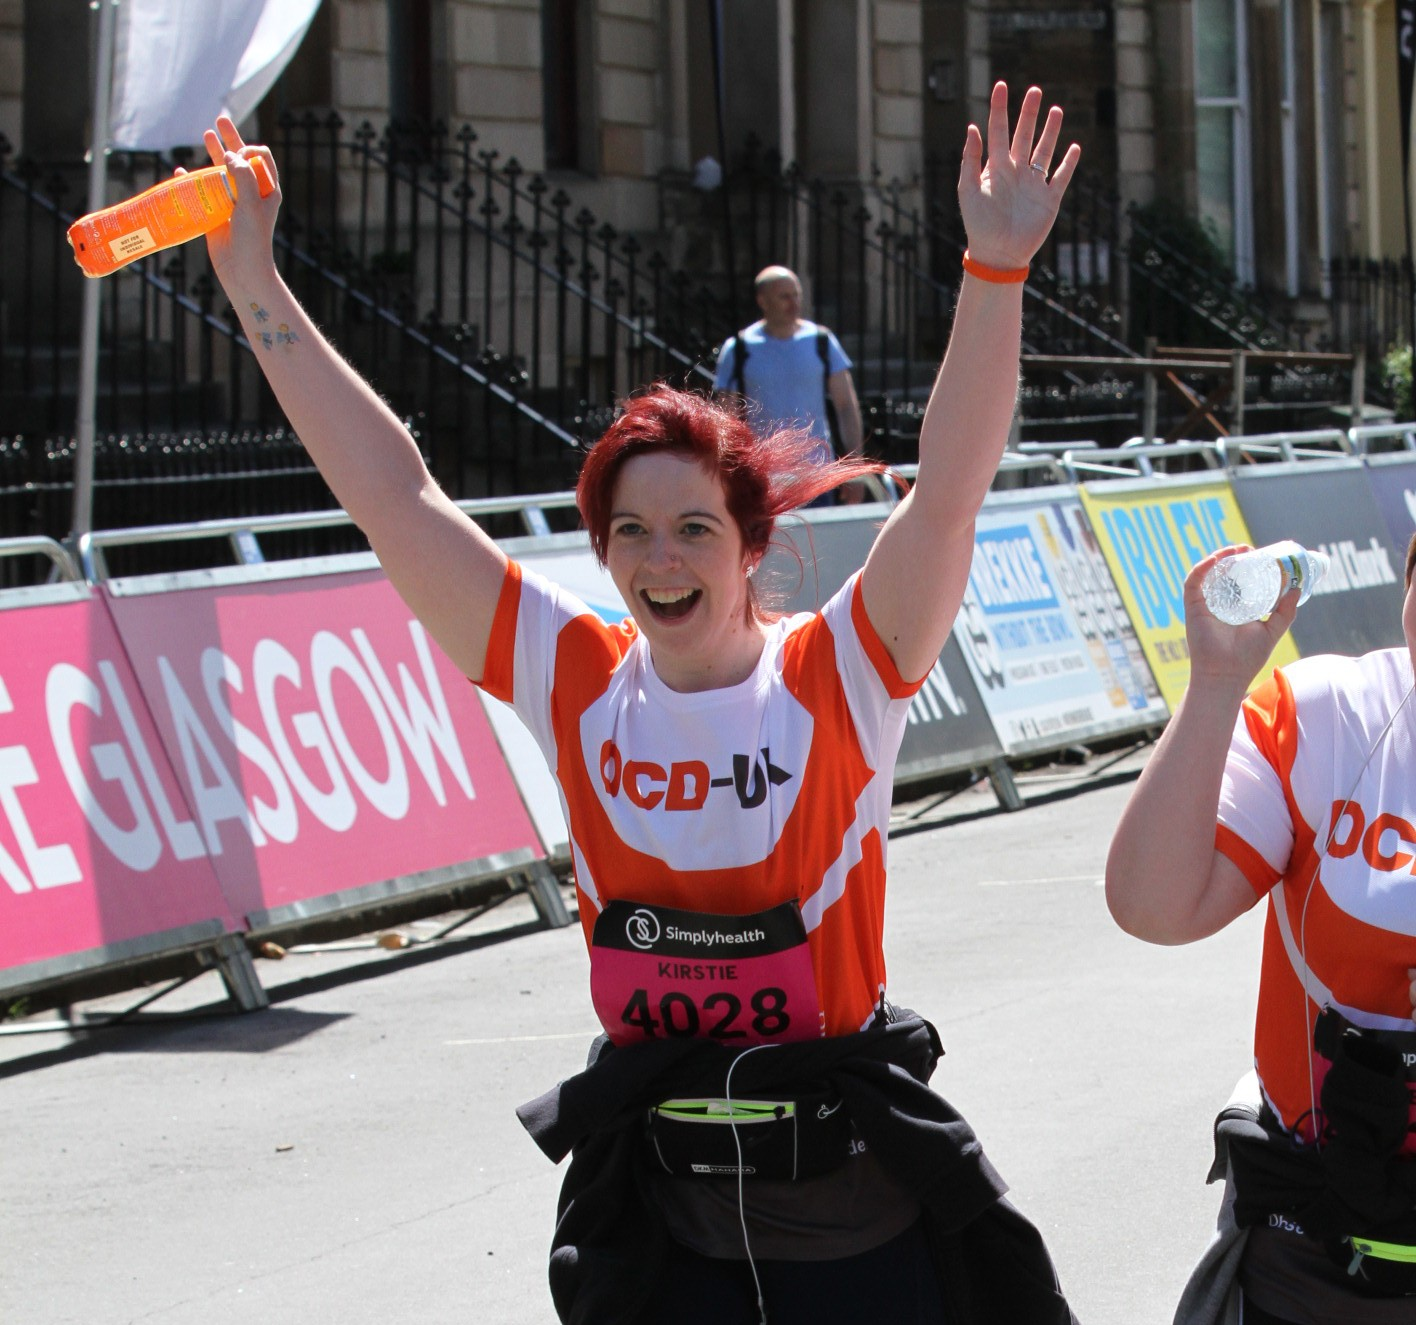 Kirstie crosses the finish line with her OCD-UK t-shirt and beaming smile with her arms in the air.